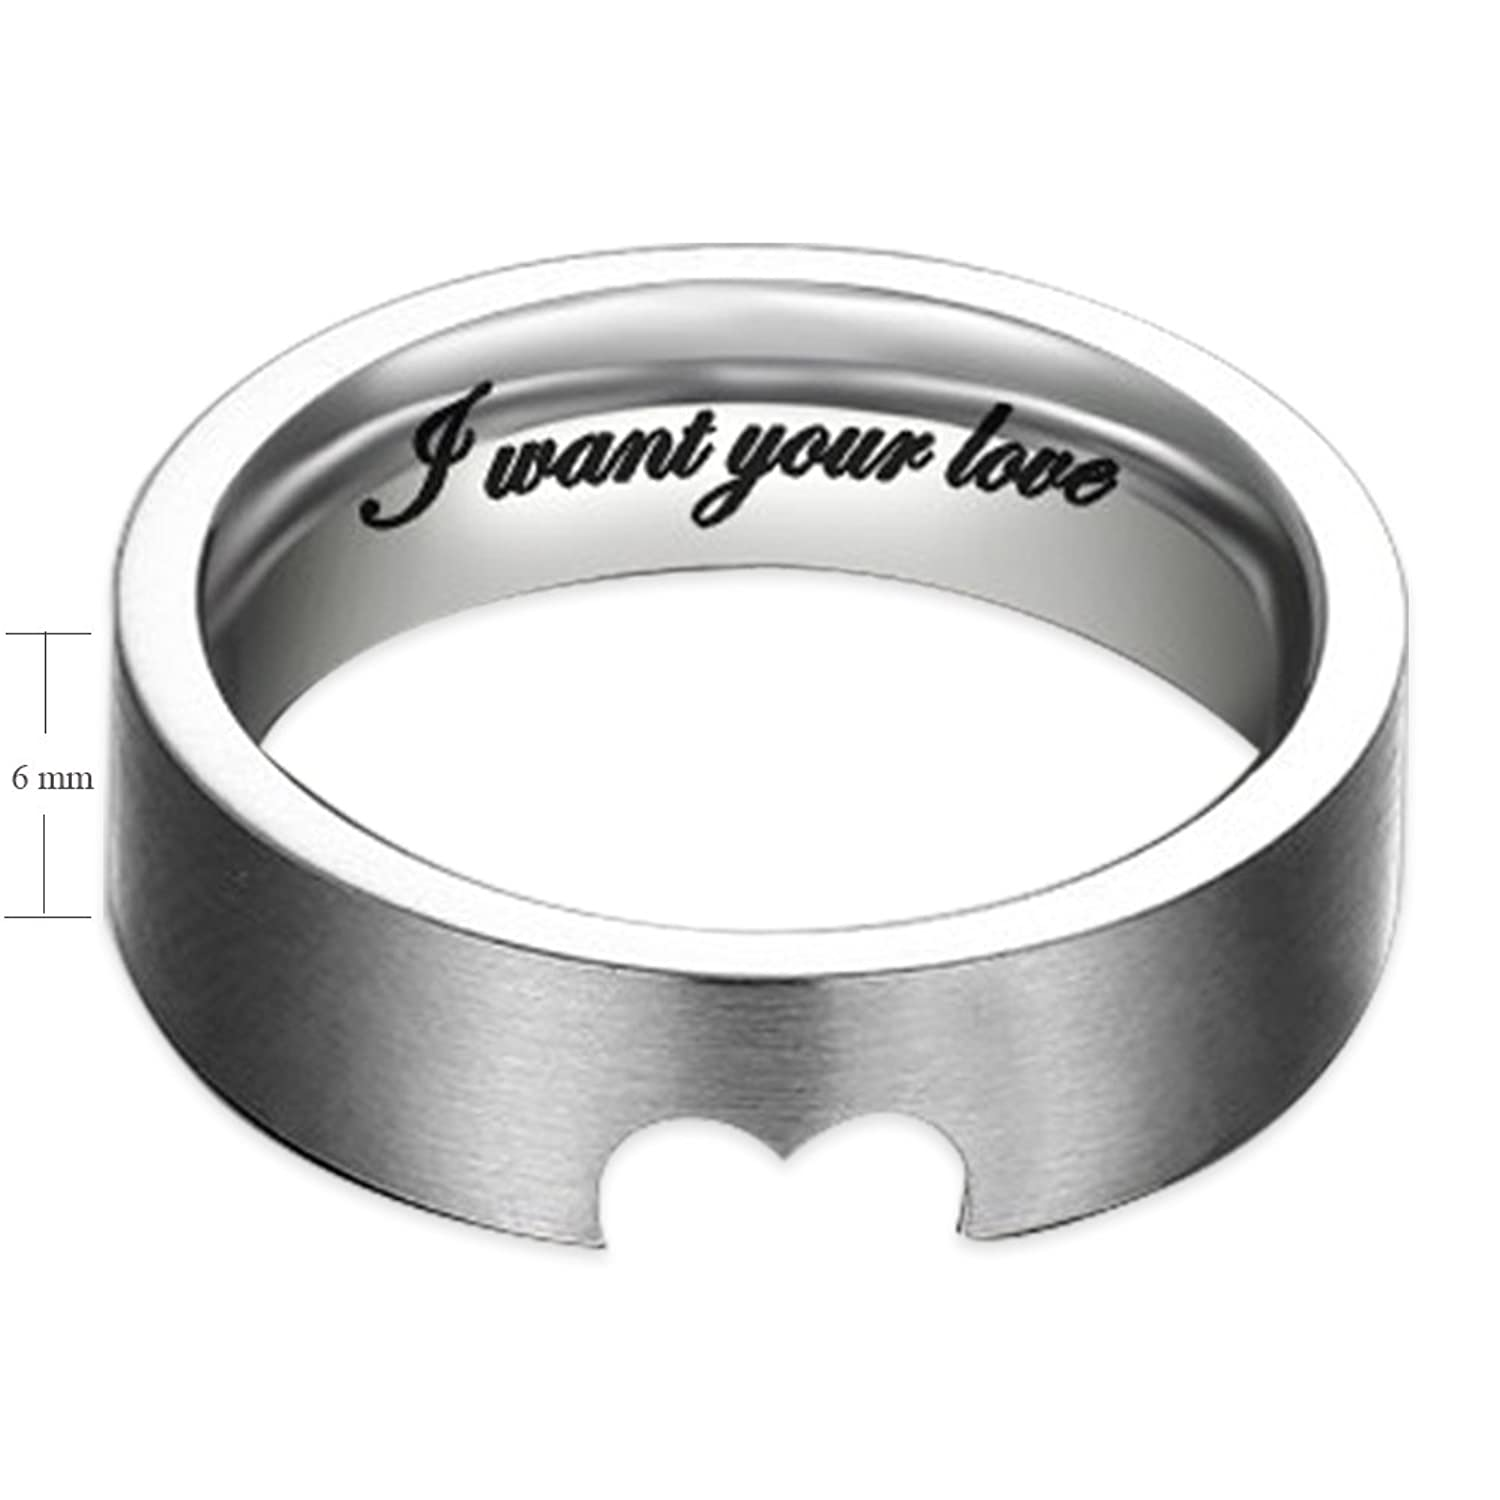 wholesale wedding dazzling jewelry ring products main sand blast black finish rings stainless steel band